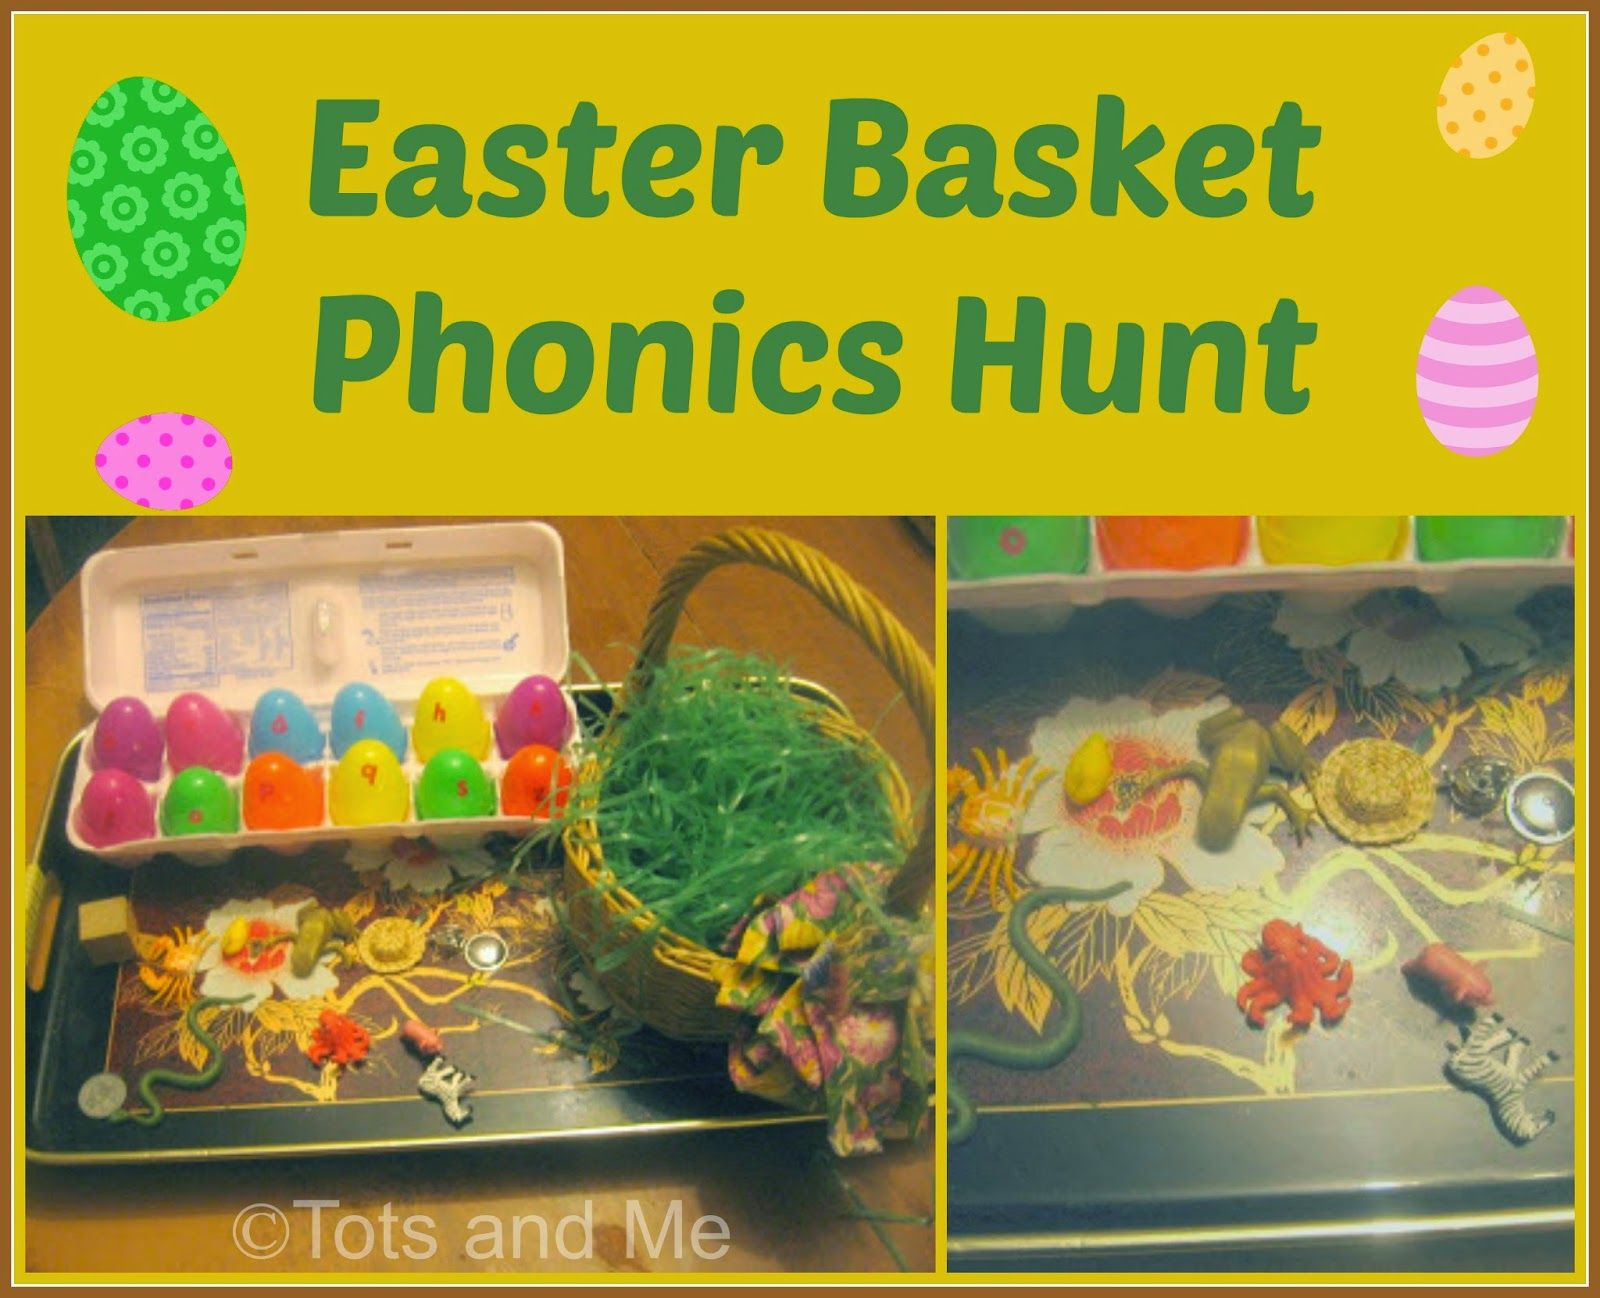 Easter Basket Phonics Hunt